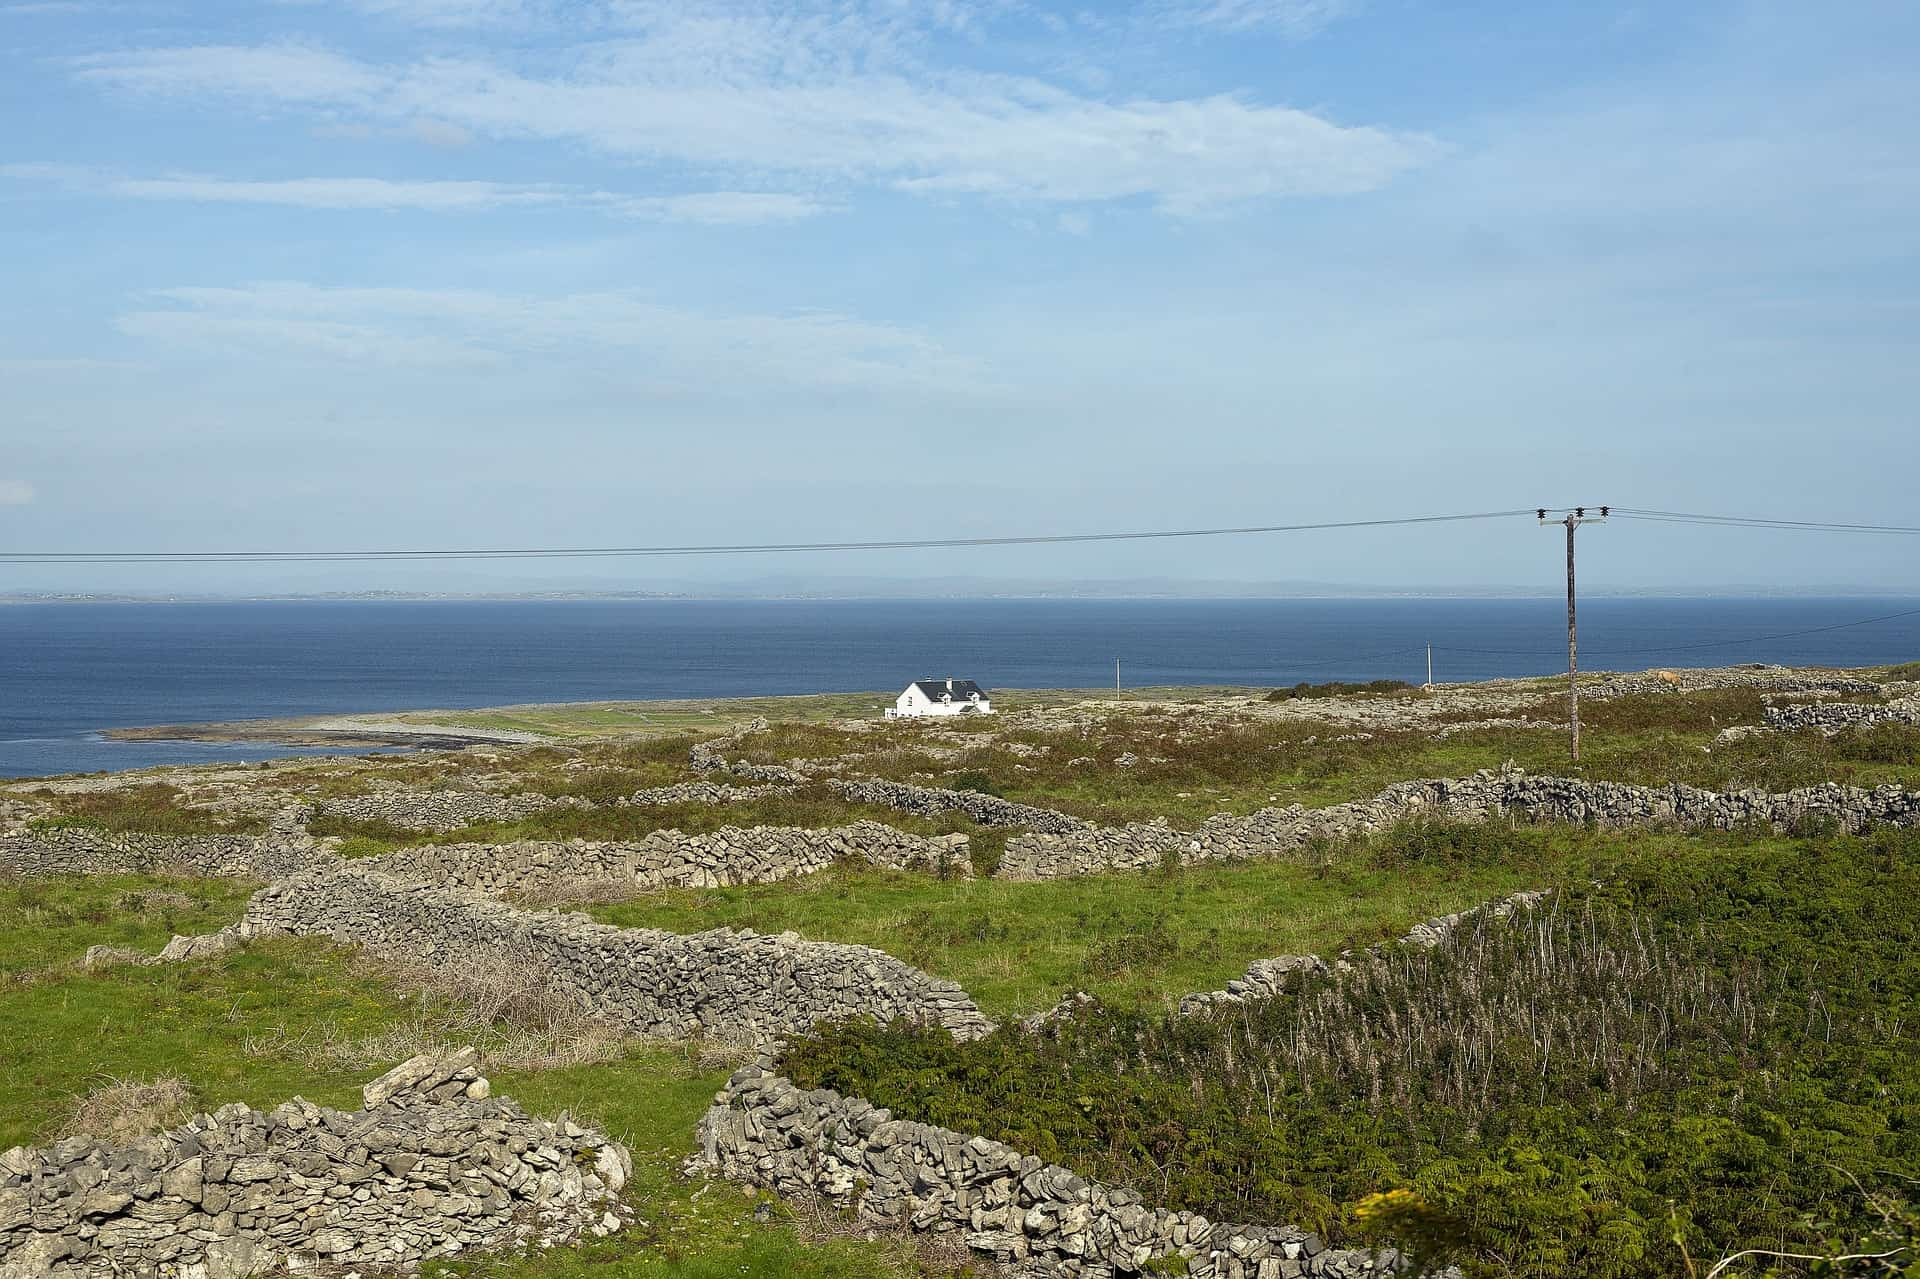 Small white house on the Aran islands. Tiny stone walls surrounding it looking out to sea.